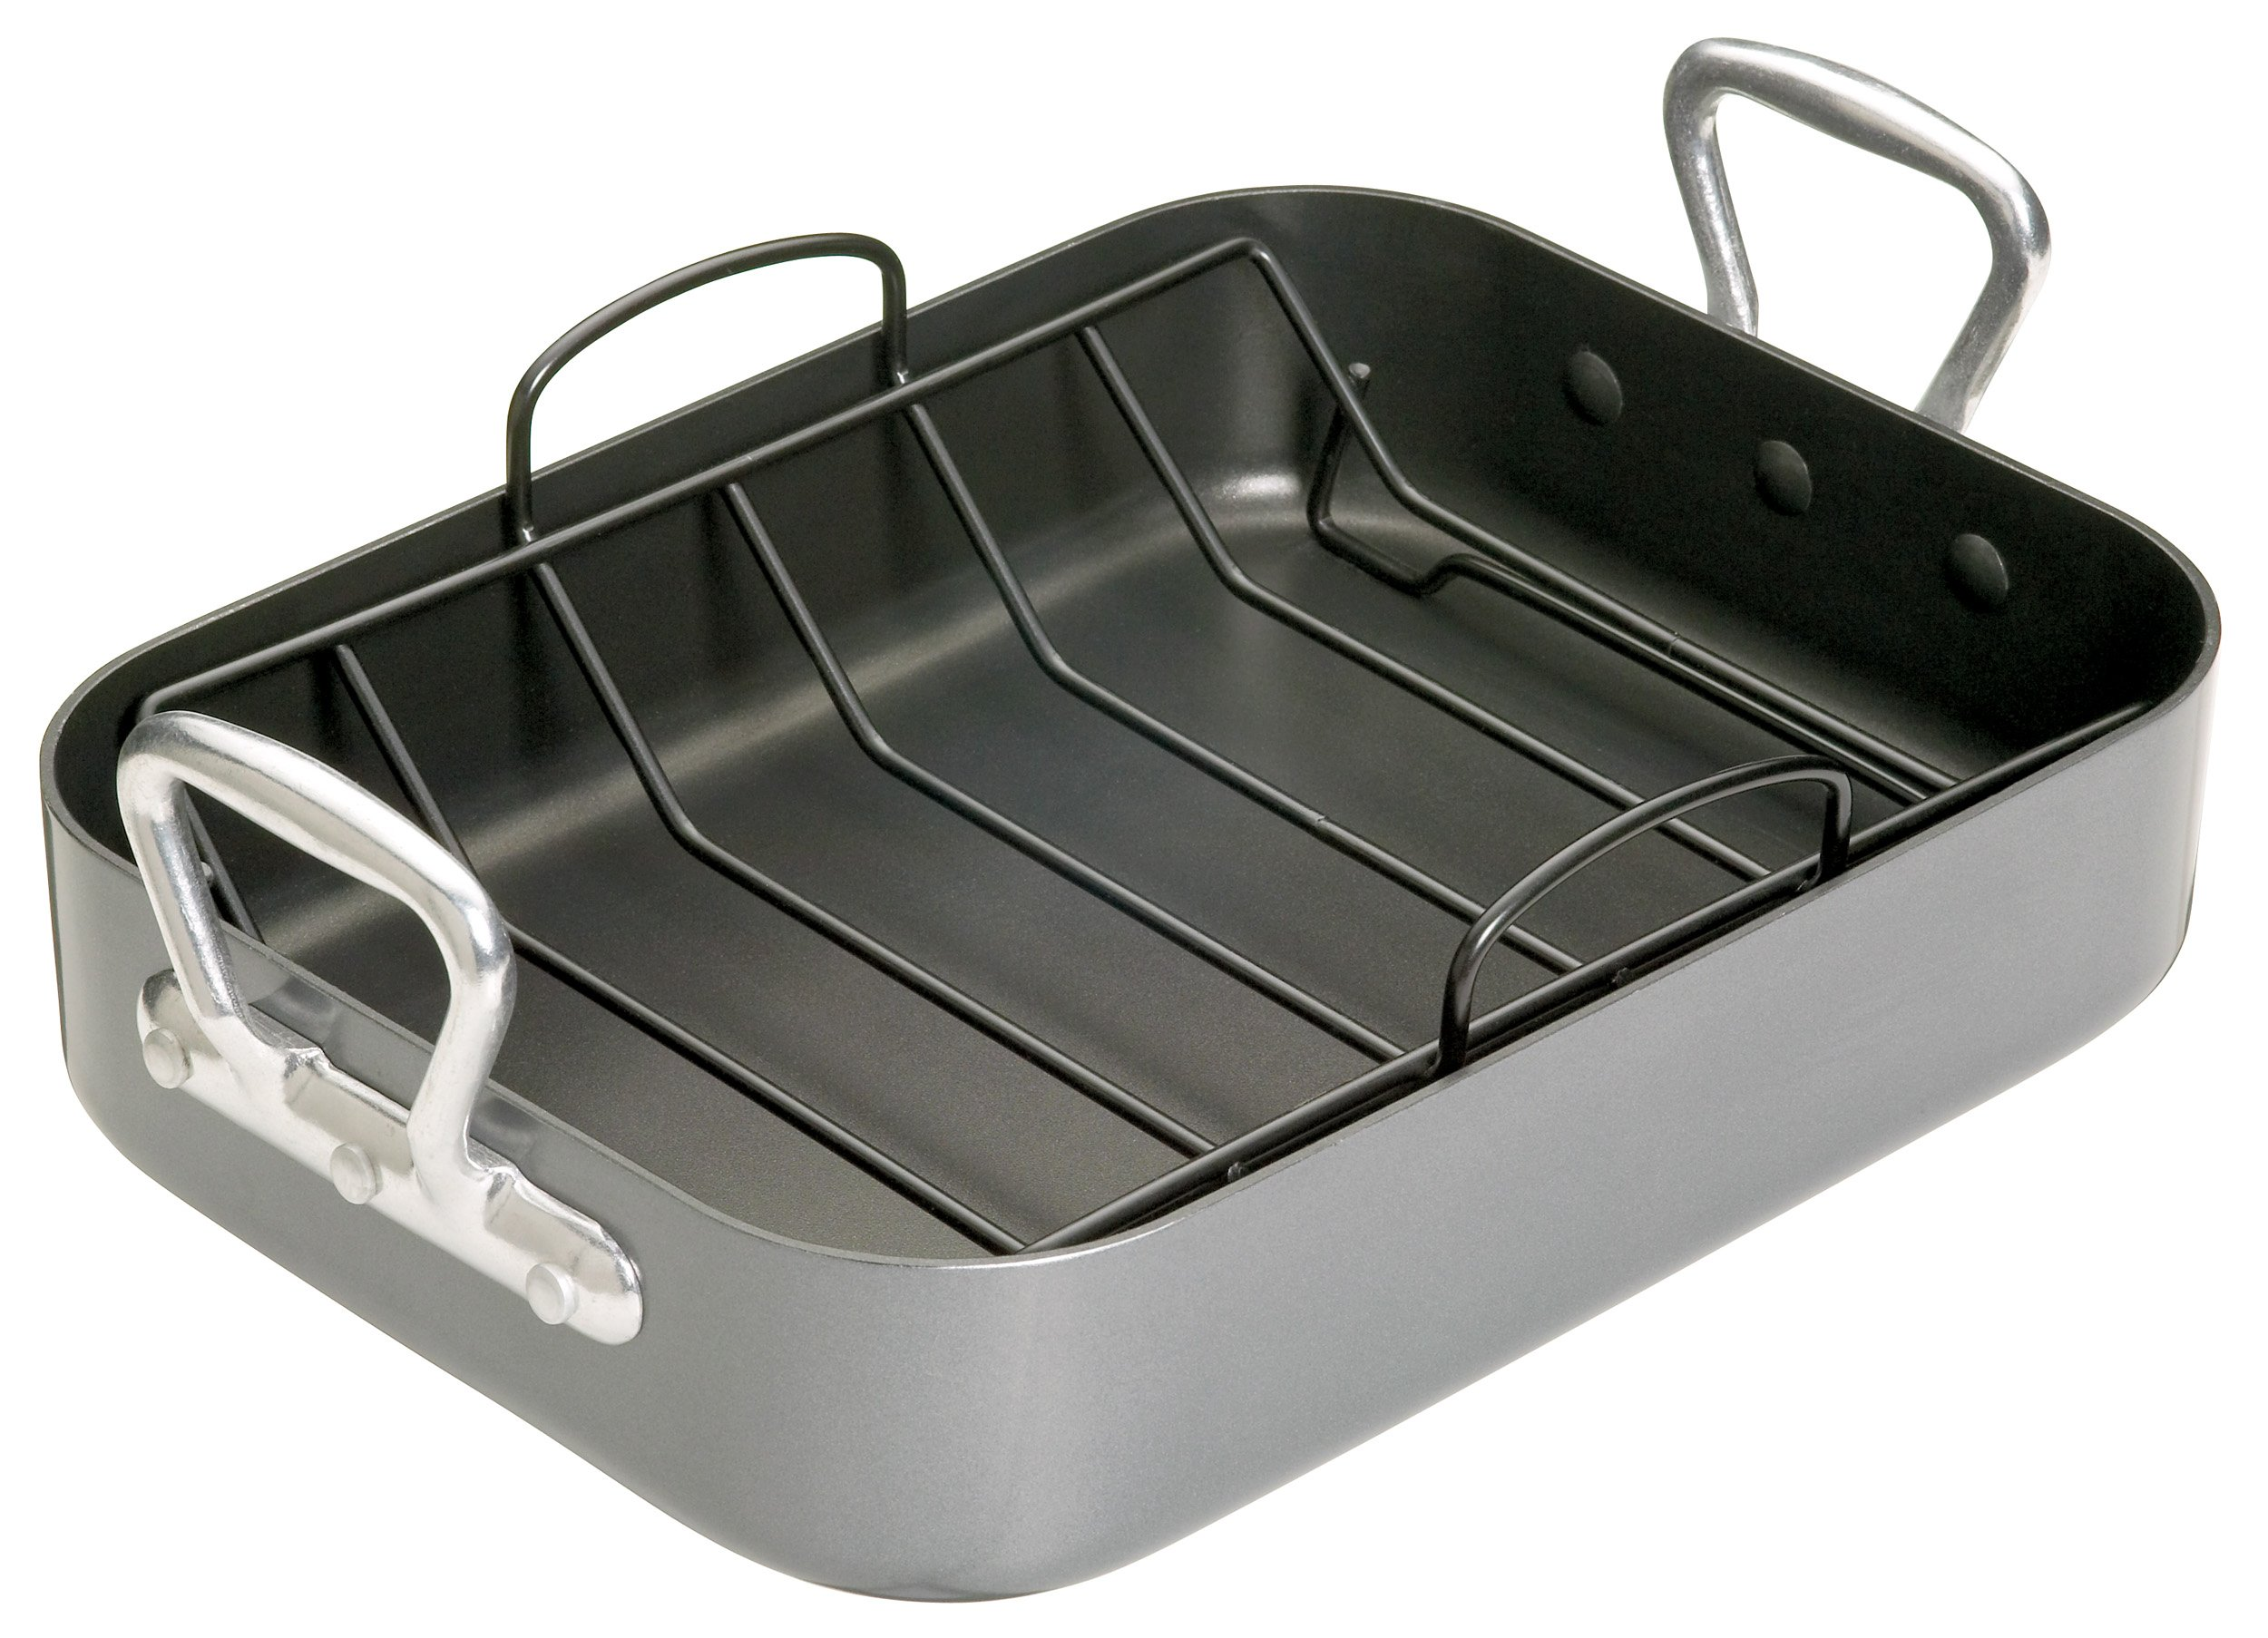 Kitchen Craft Premium Roaster Set With Side Handles And Non-stick Rack